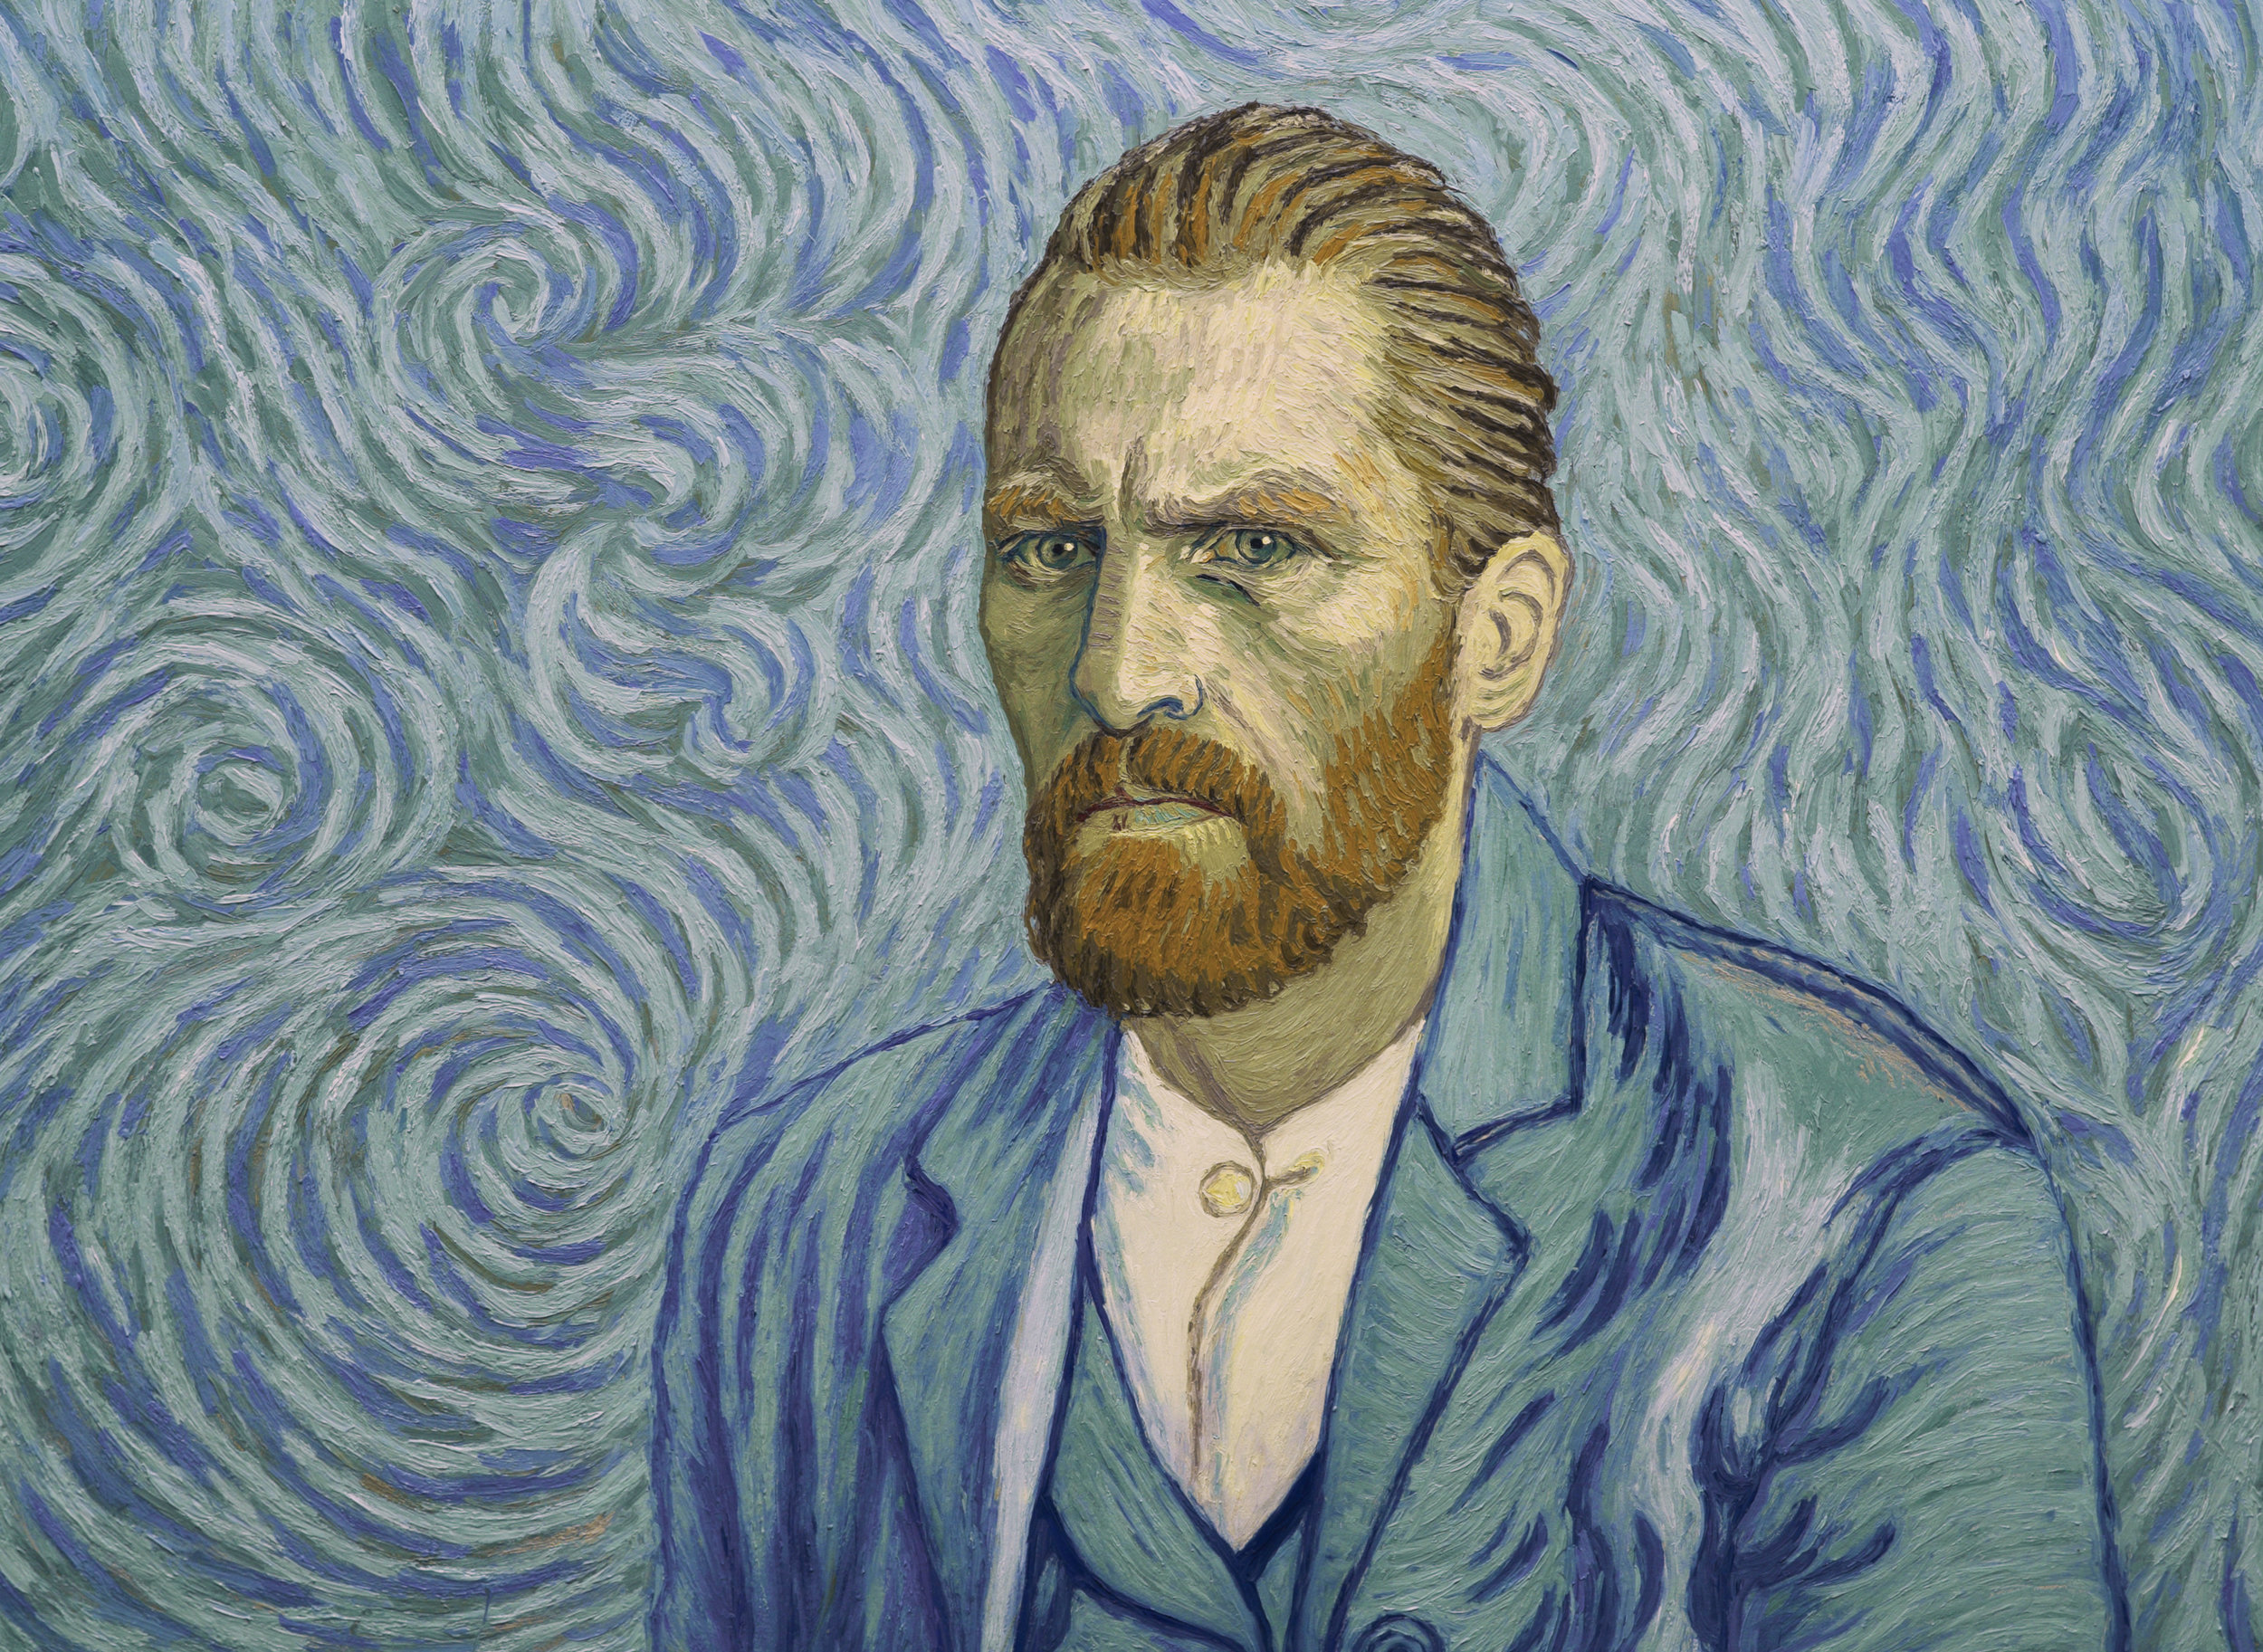 Vincent Van Gogh, painted by Robert Glyaczk. Courtesy of Loving Vincent.